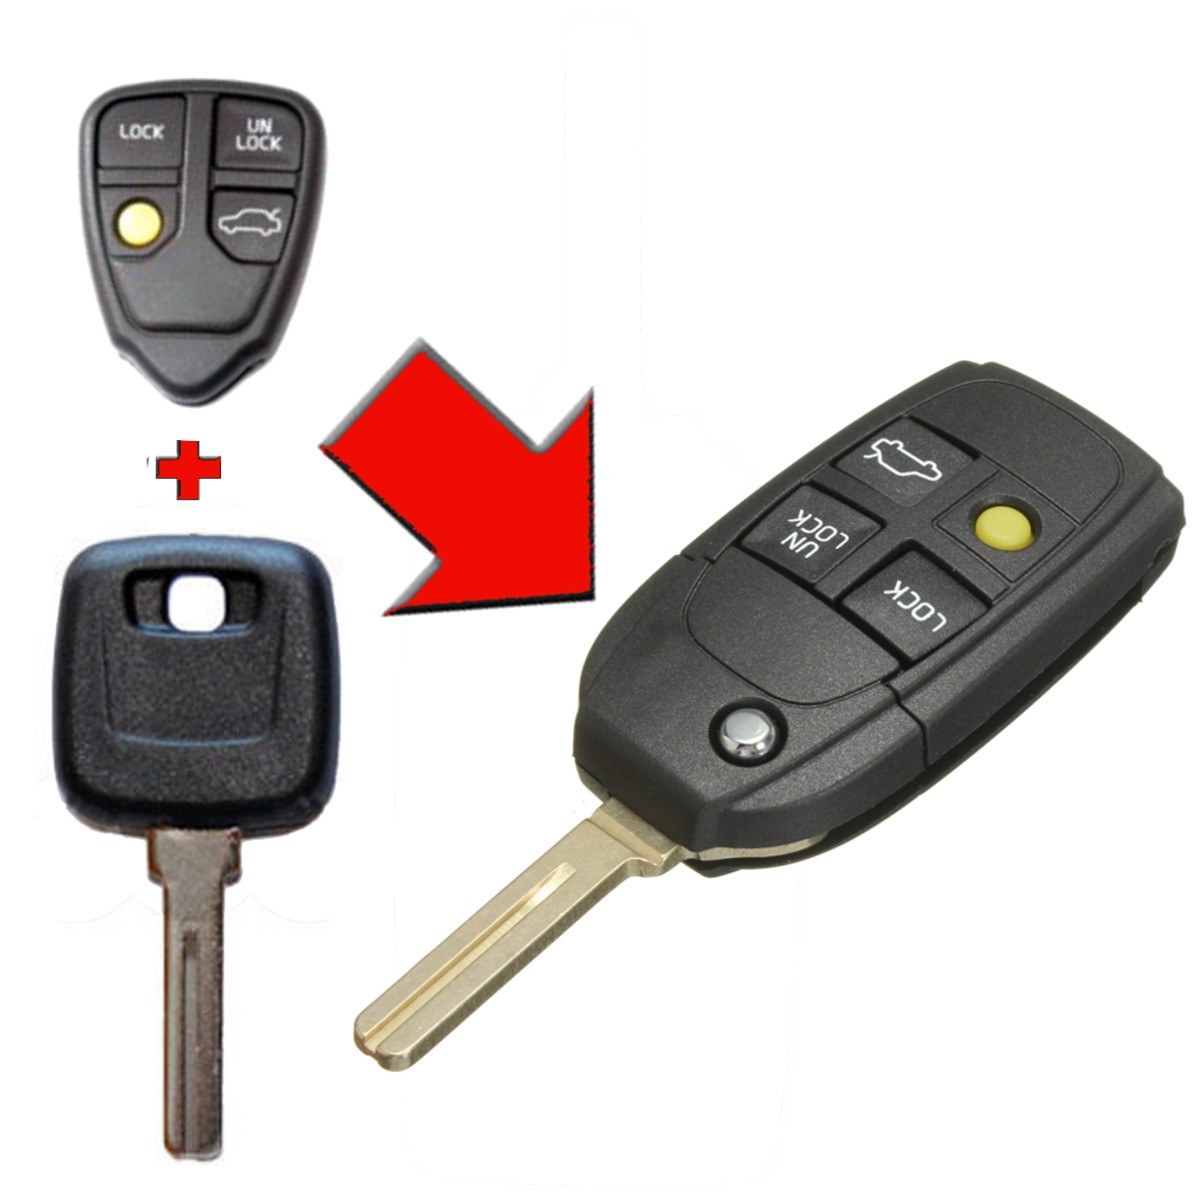 Car Remote Key Shell Case Modified Key 2 3 4 Buttons For Volvo XC70 XC90 V40 V50 V70 V90 C30 C70 S40 S60 S70 S80